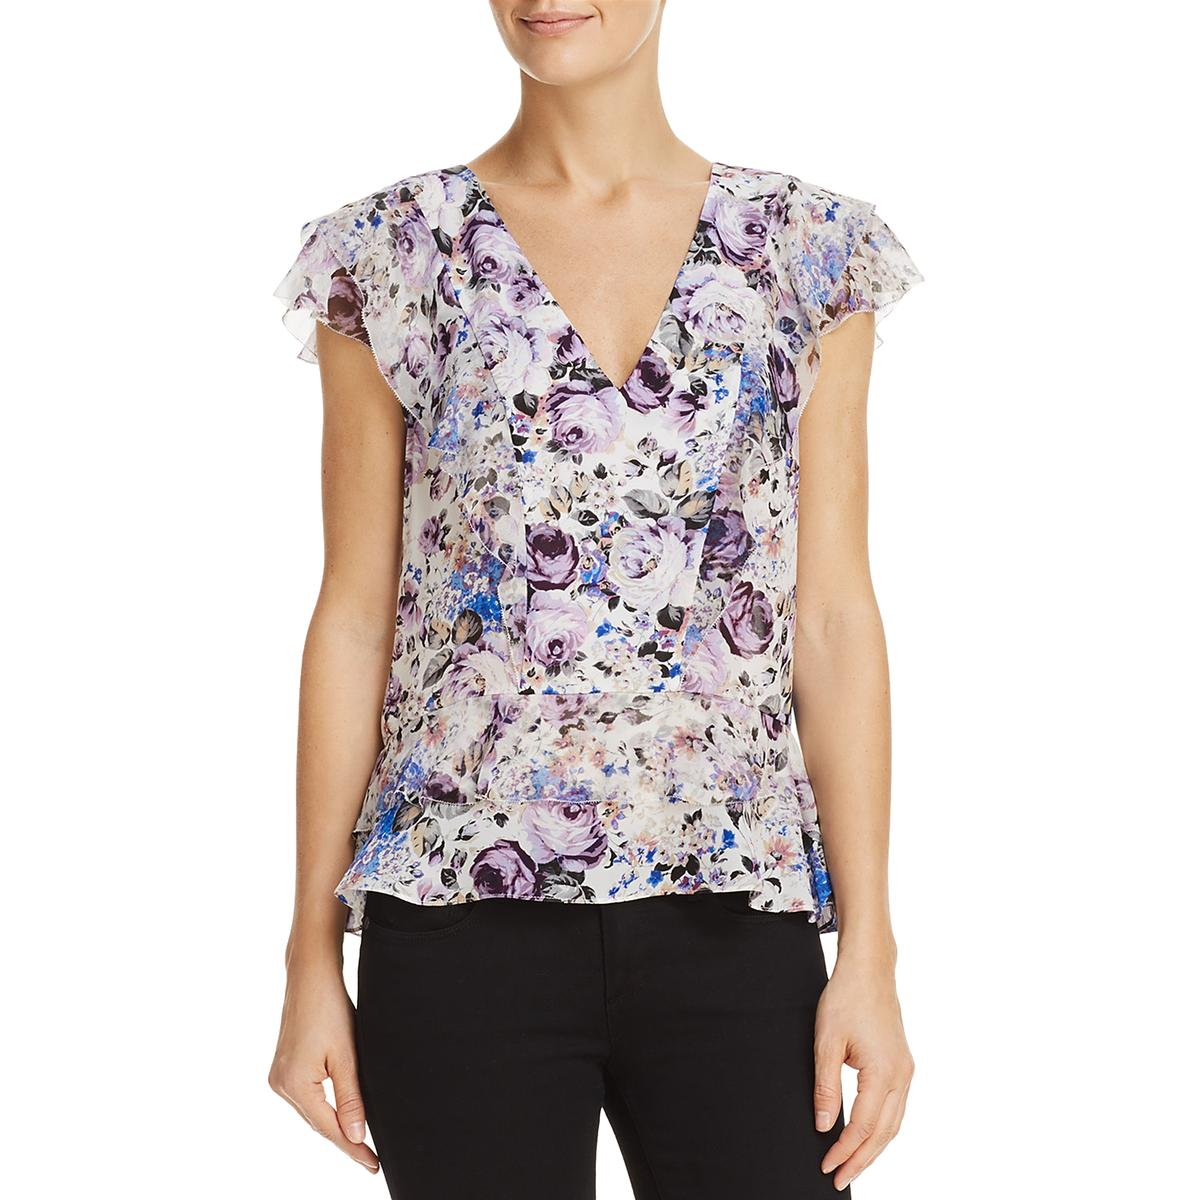 dd4fbee13a091 Details about Parker Womens Evelyn Silk Floral Print Cap Sleeves Blouse Top  BHFO 5605